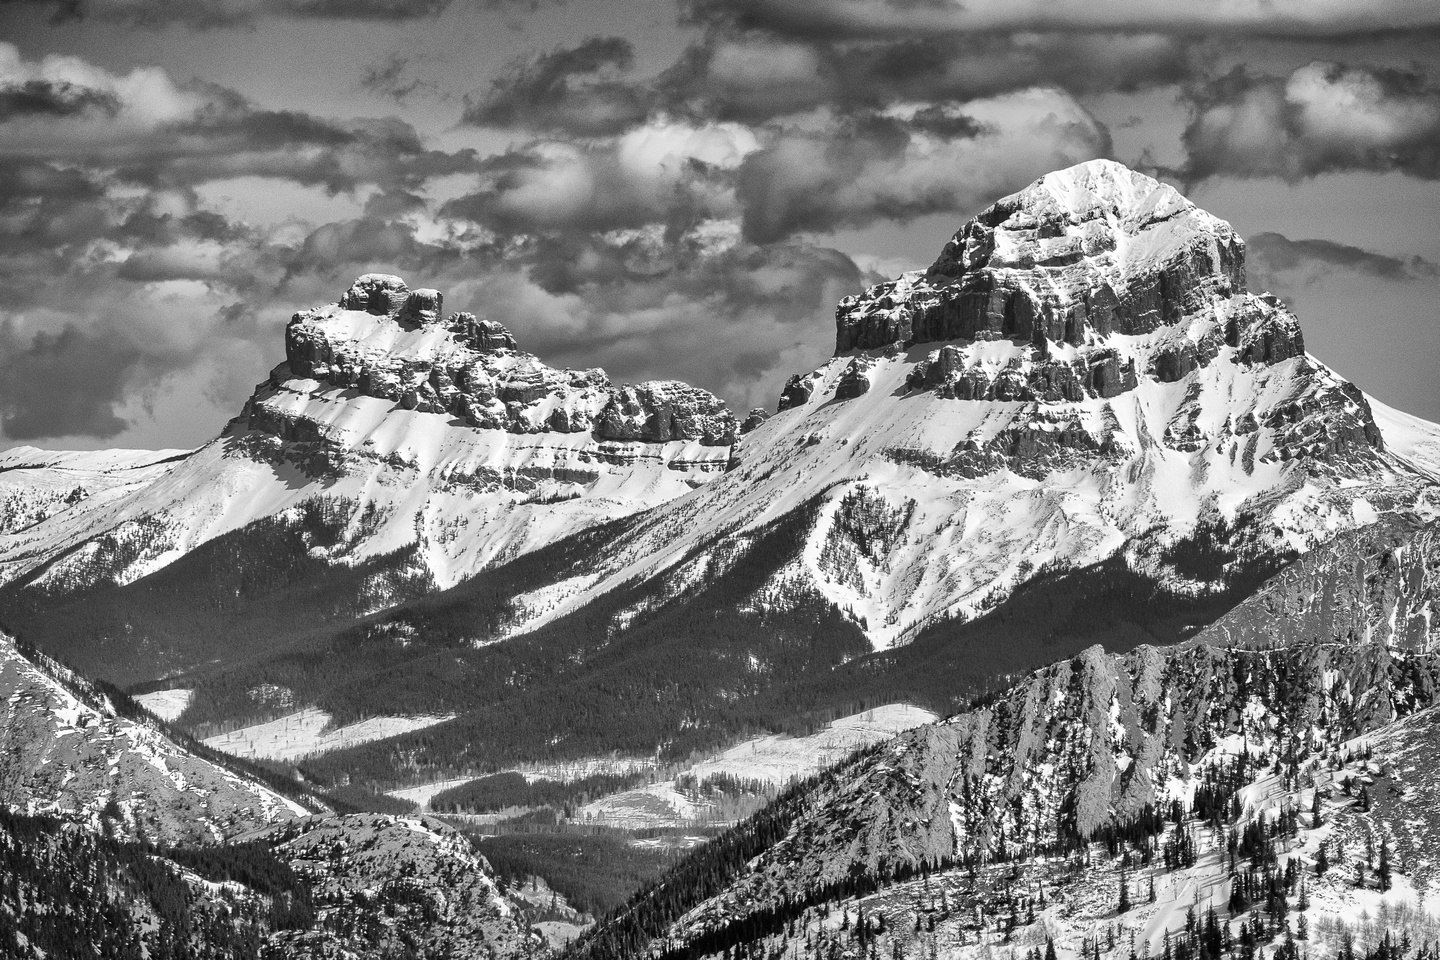 Crowsnest Mountain is still one of my favorite scrambles in the Crowsnest Pass area.